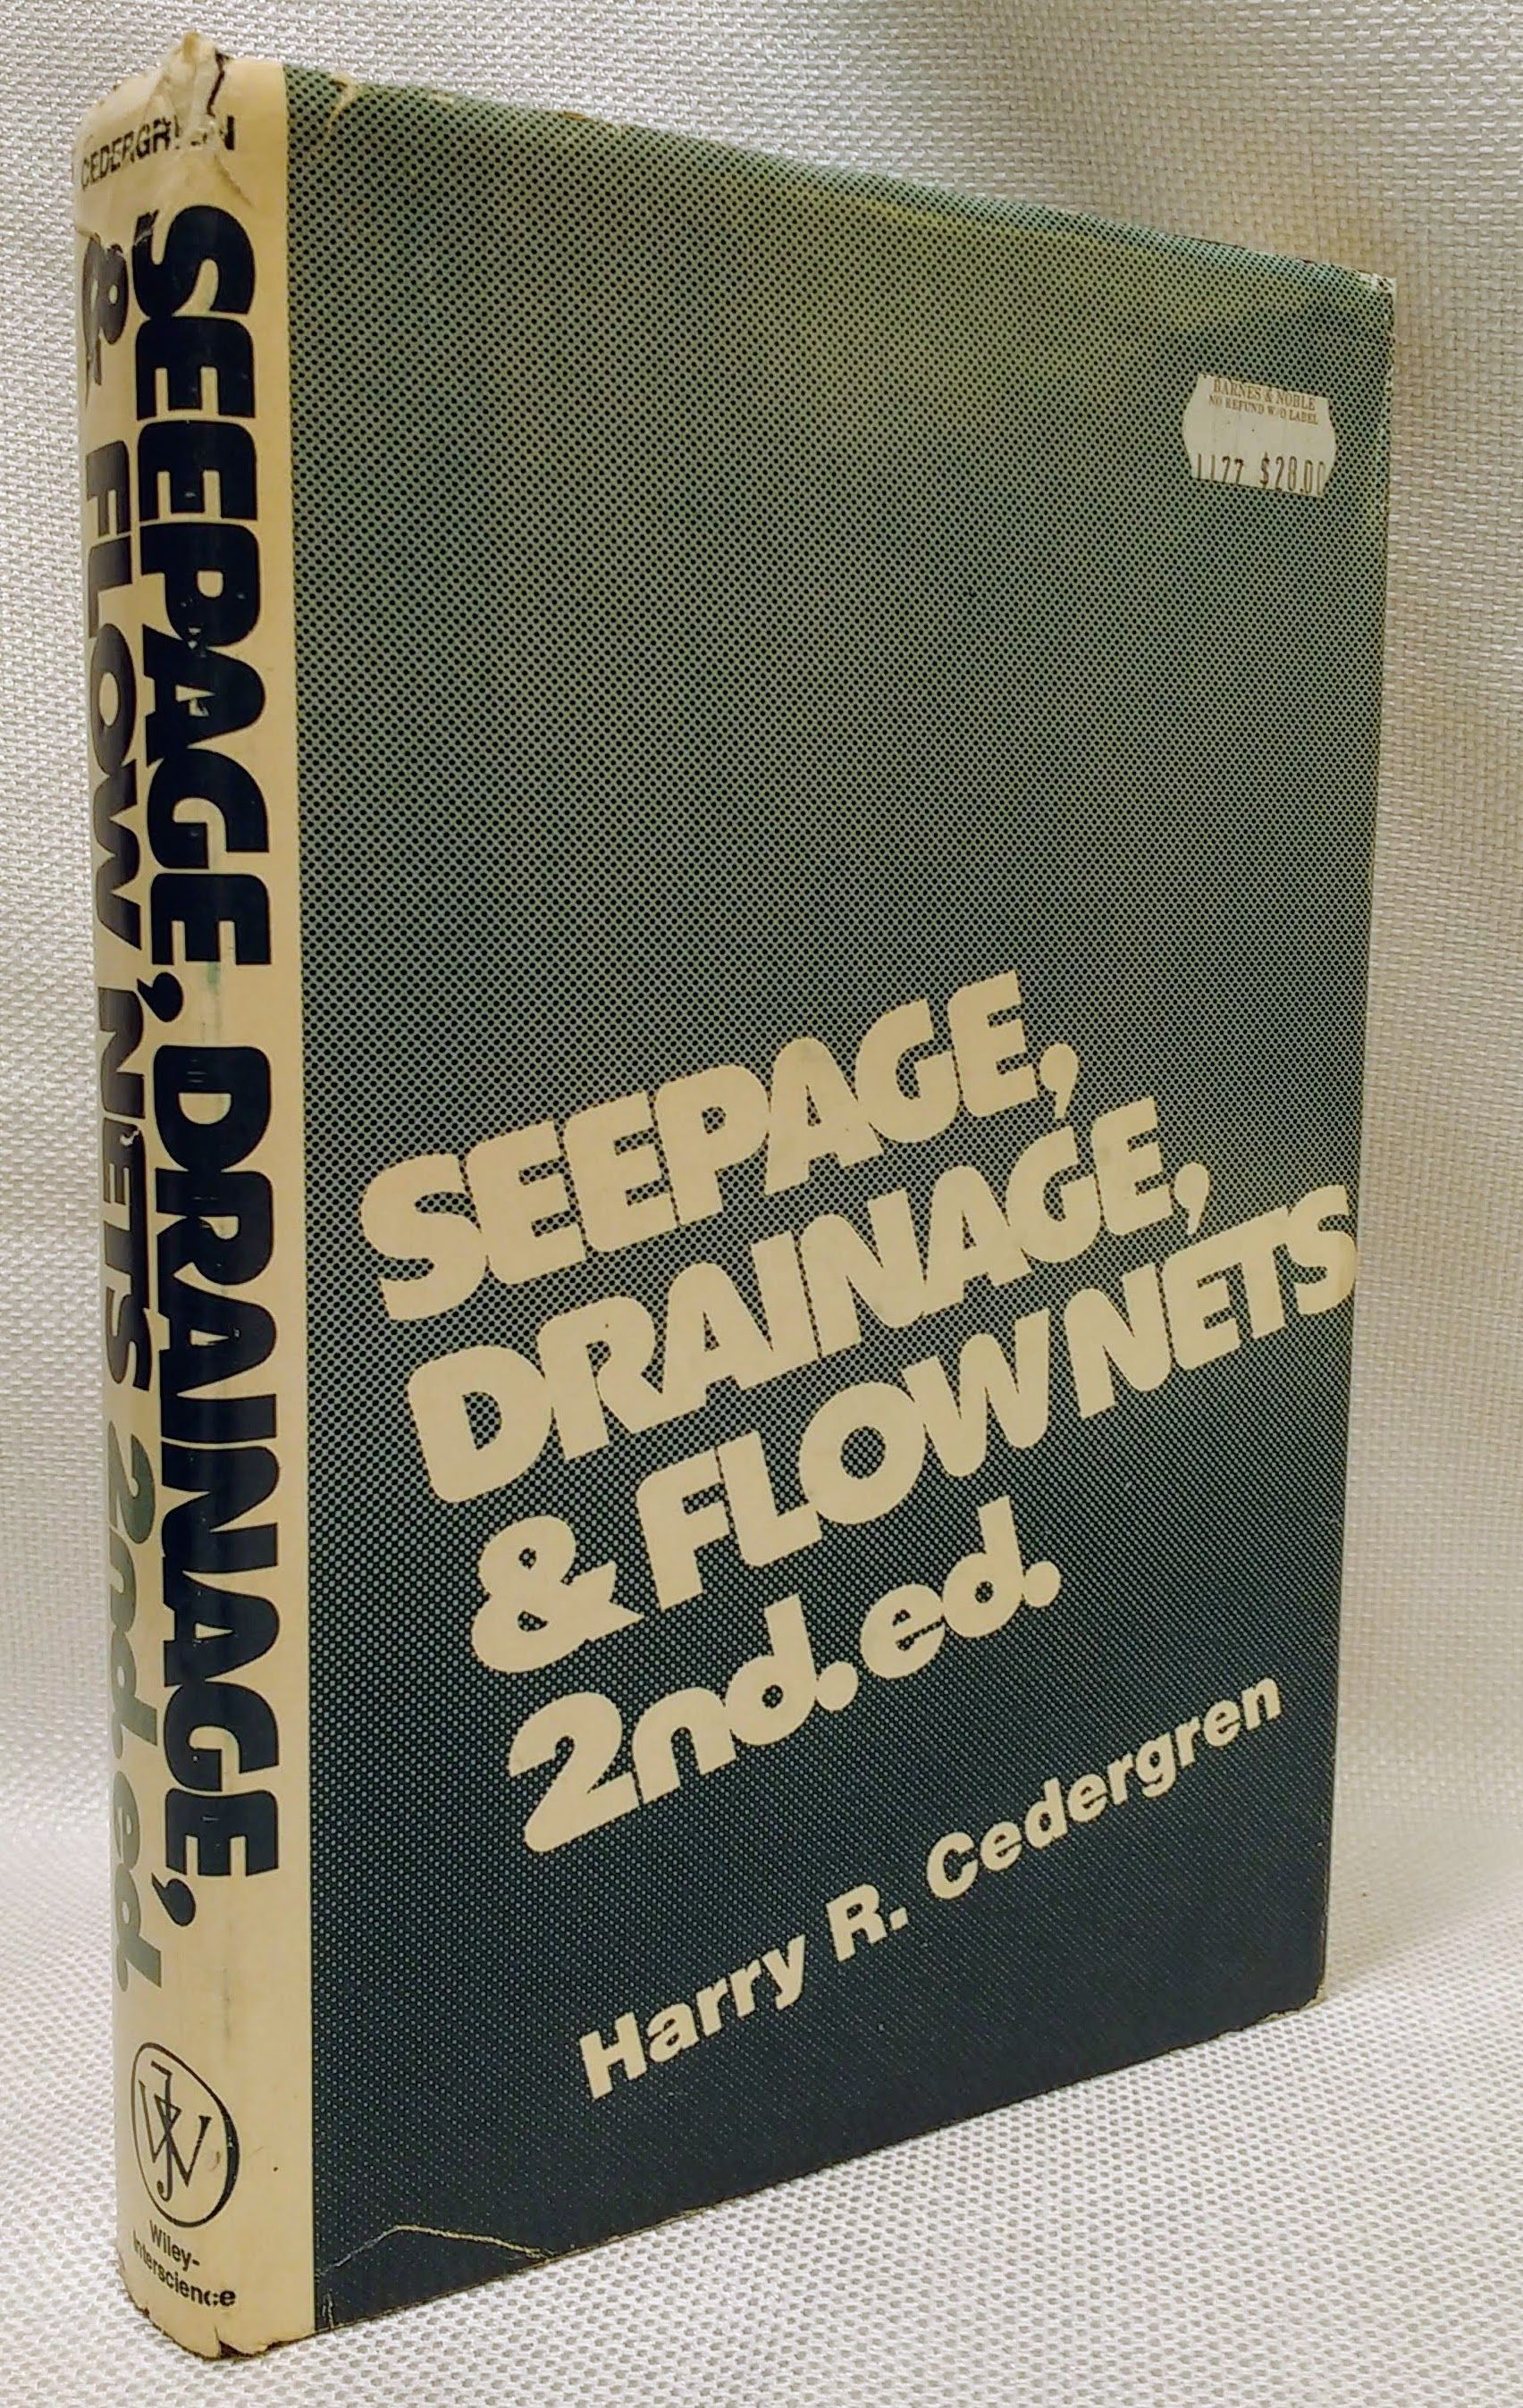 Seepage, drainage, and flow nets, Cedergren, Harry R